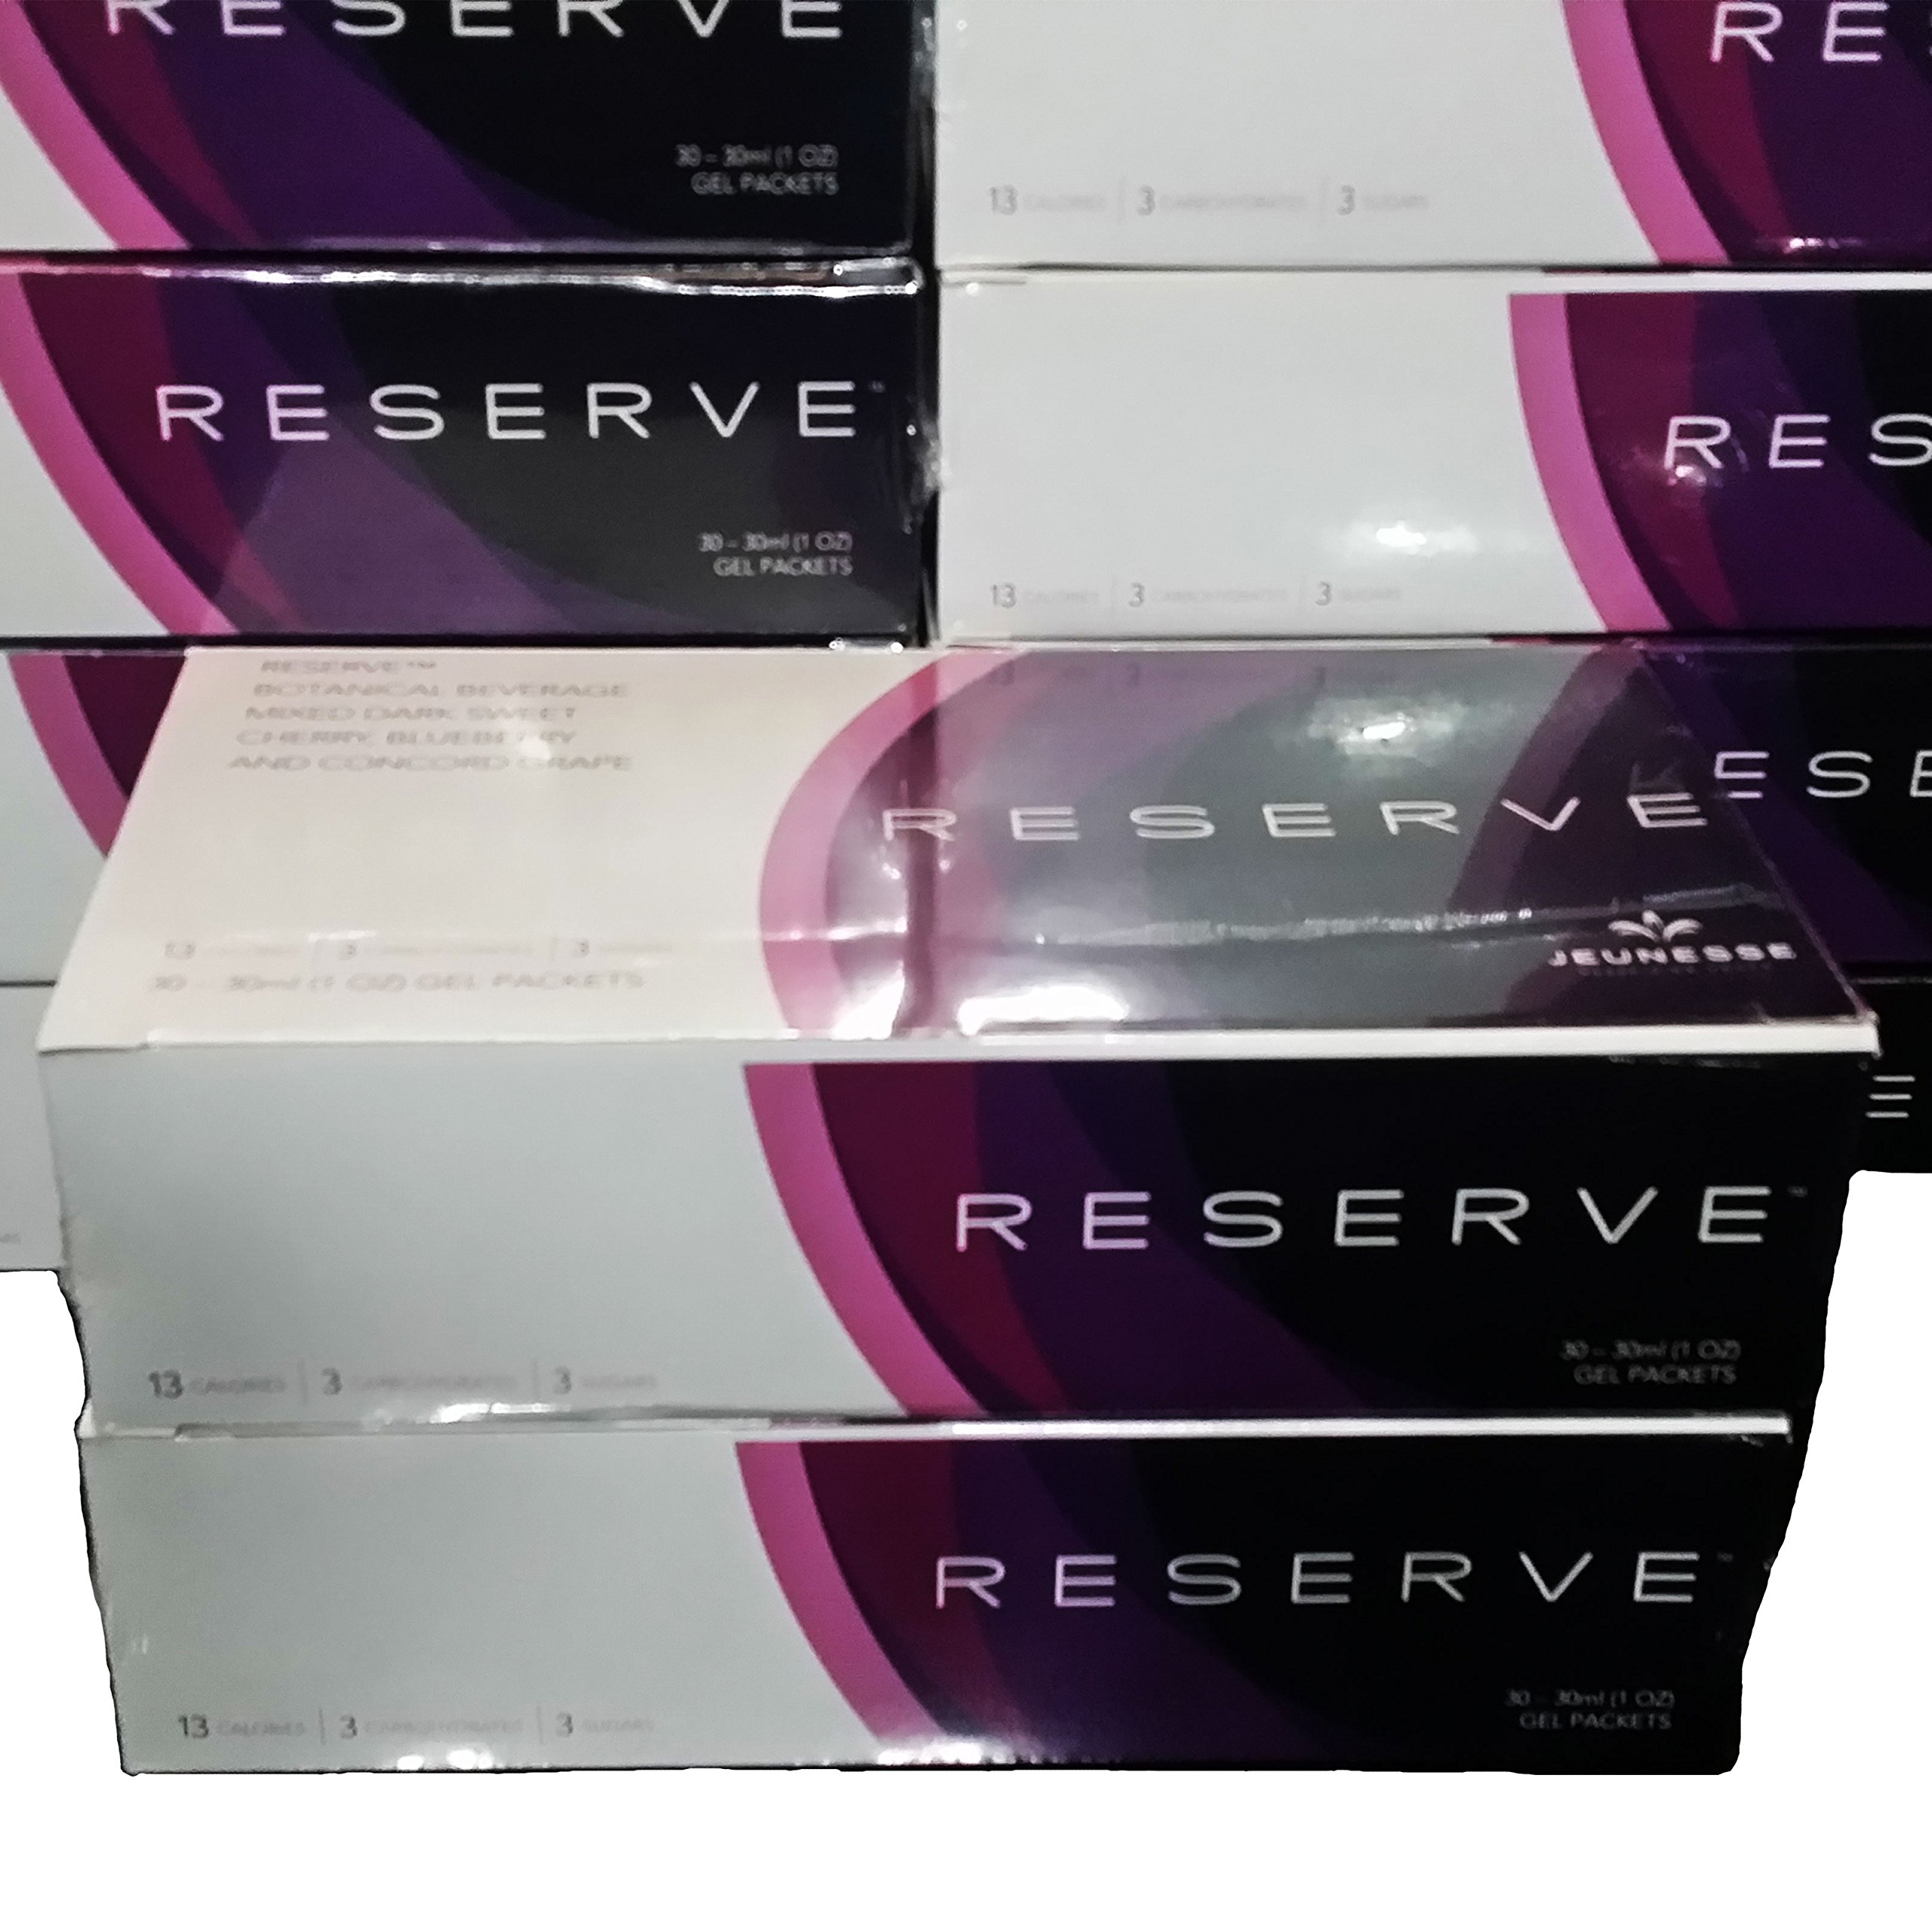 Pack-of-2 Boxes Jeunesse Reserve Antioxidant Botanical Fruit Blend -2x30 (1 Oz) Gel Packets by Reserve (Image #1)